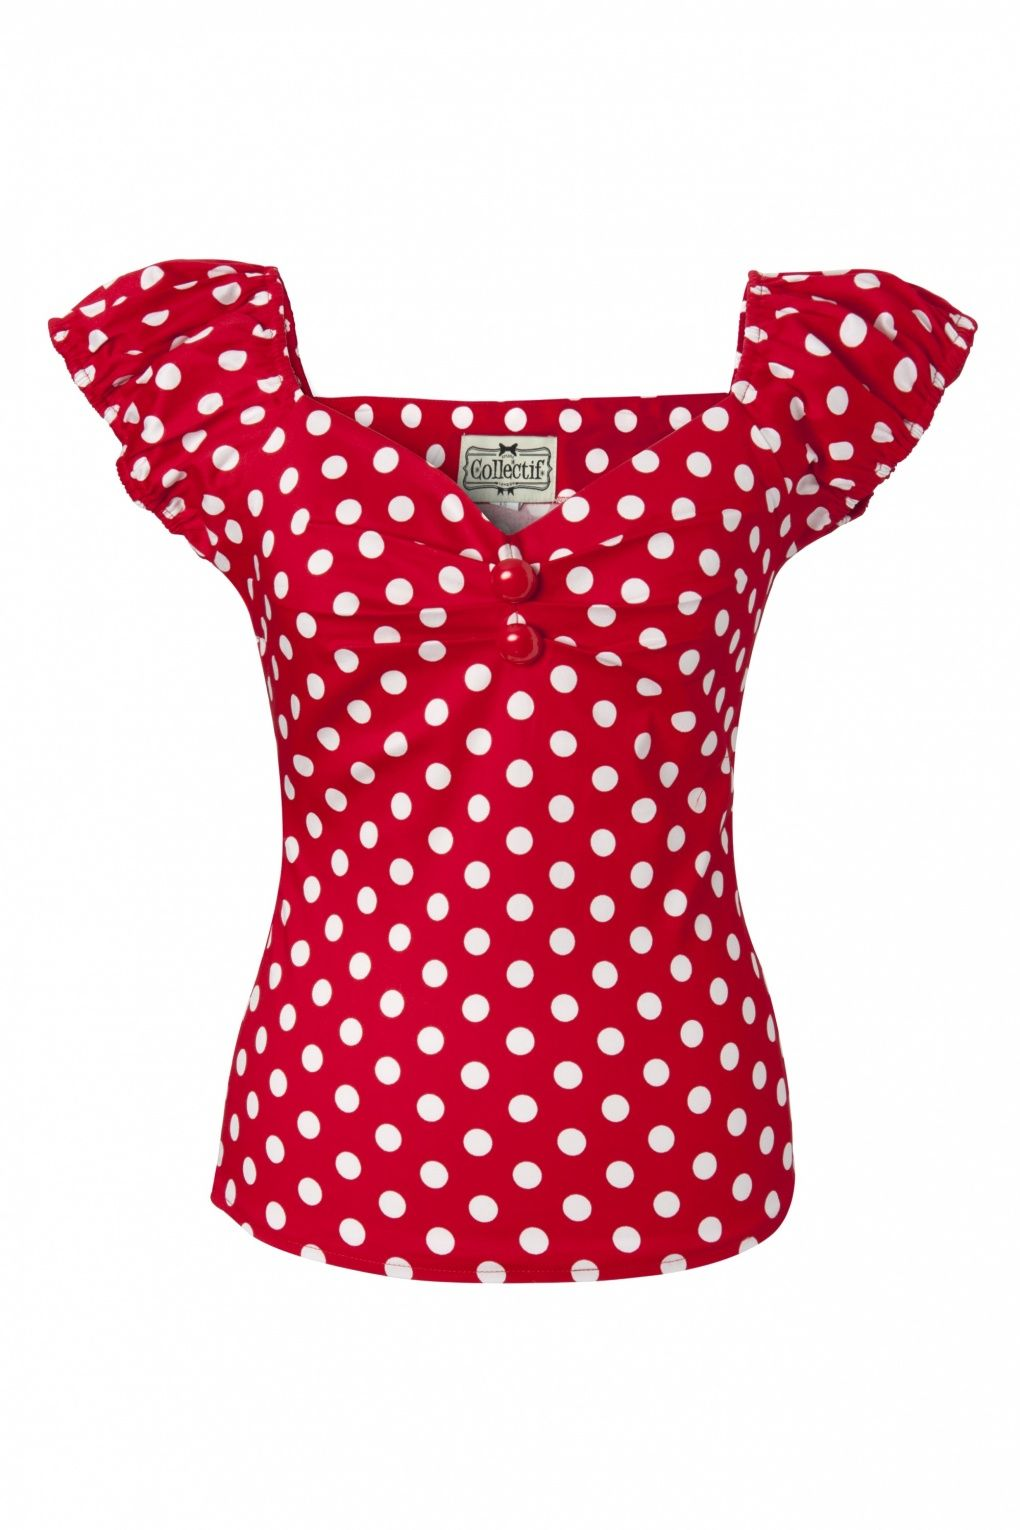 9bc5c62c06a9 Collectif Clothing - Dolores top Polka Red White